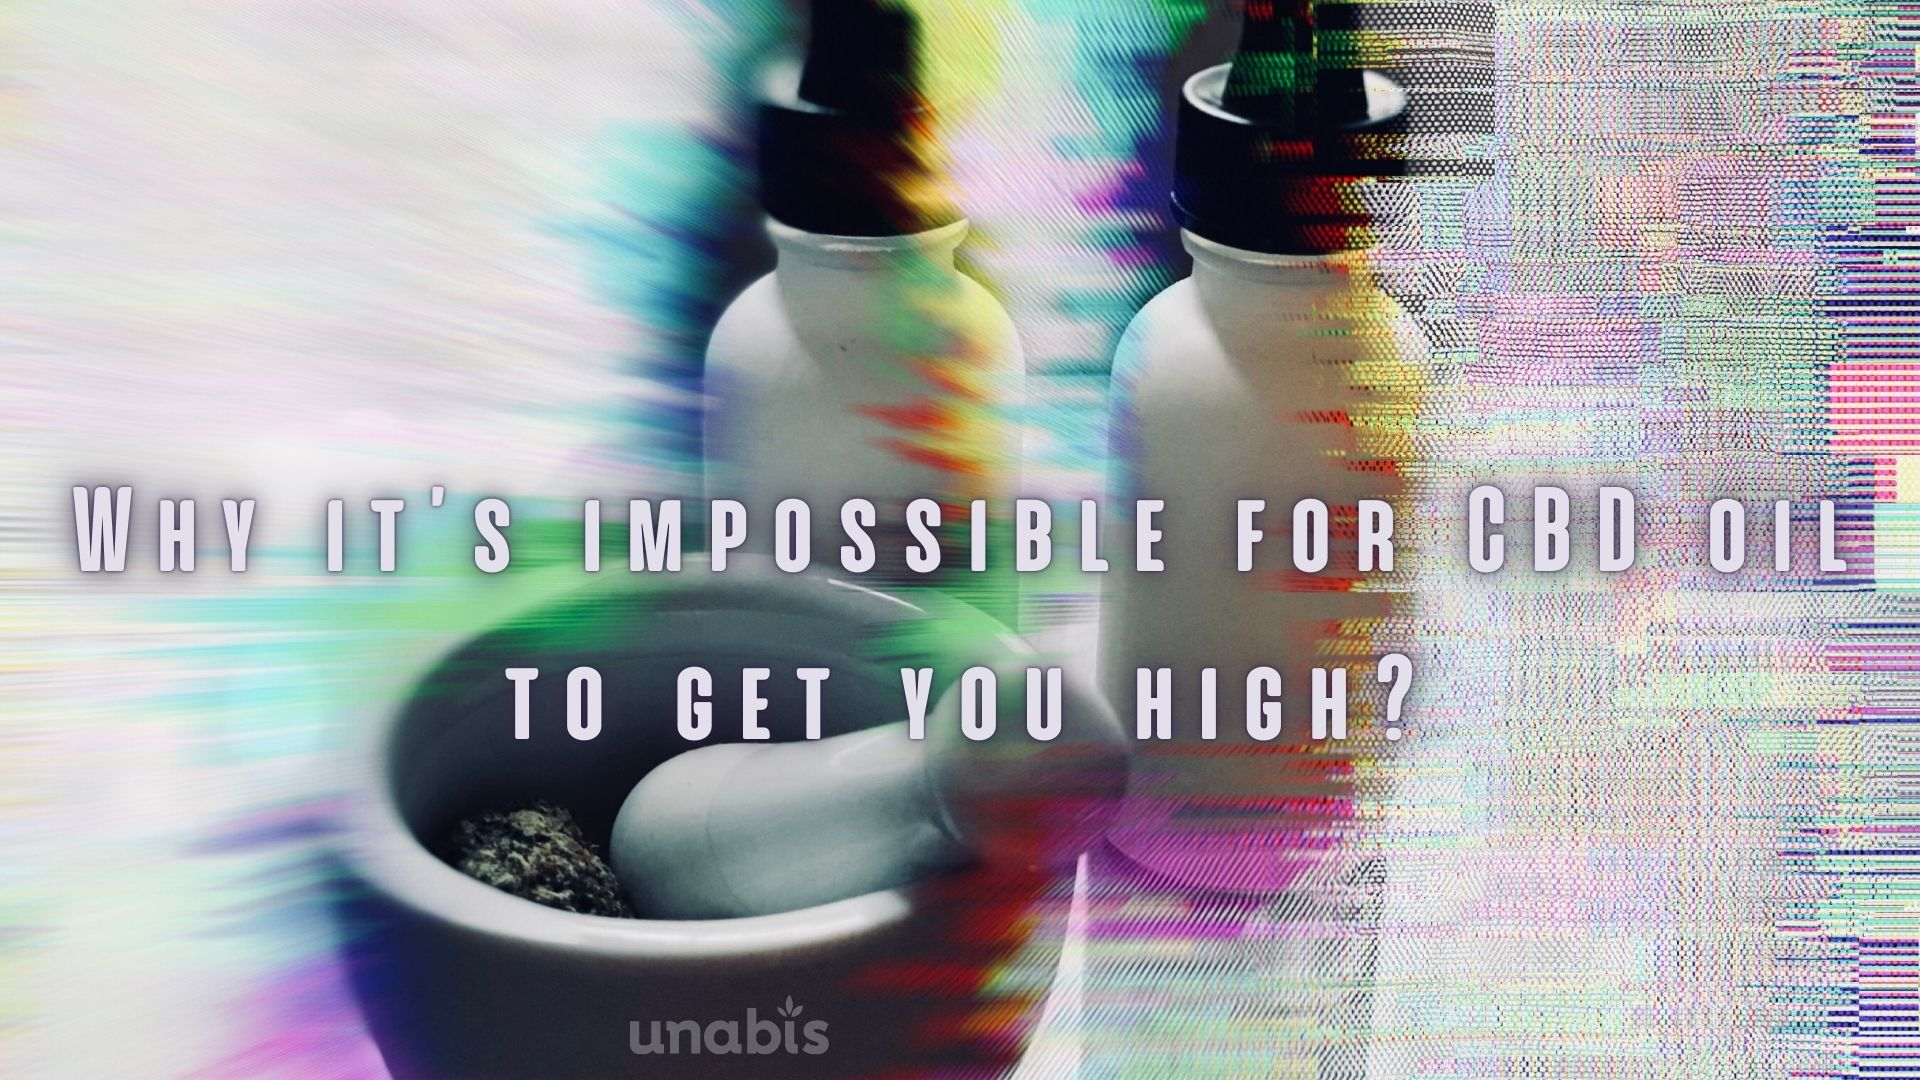 Why it's impossible for CBD oil to get you high